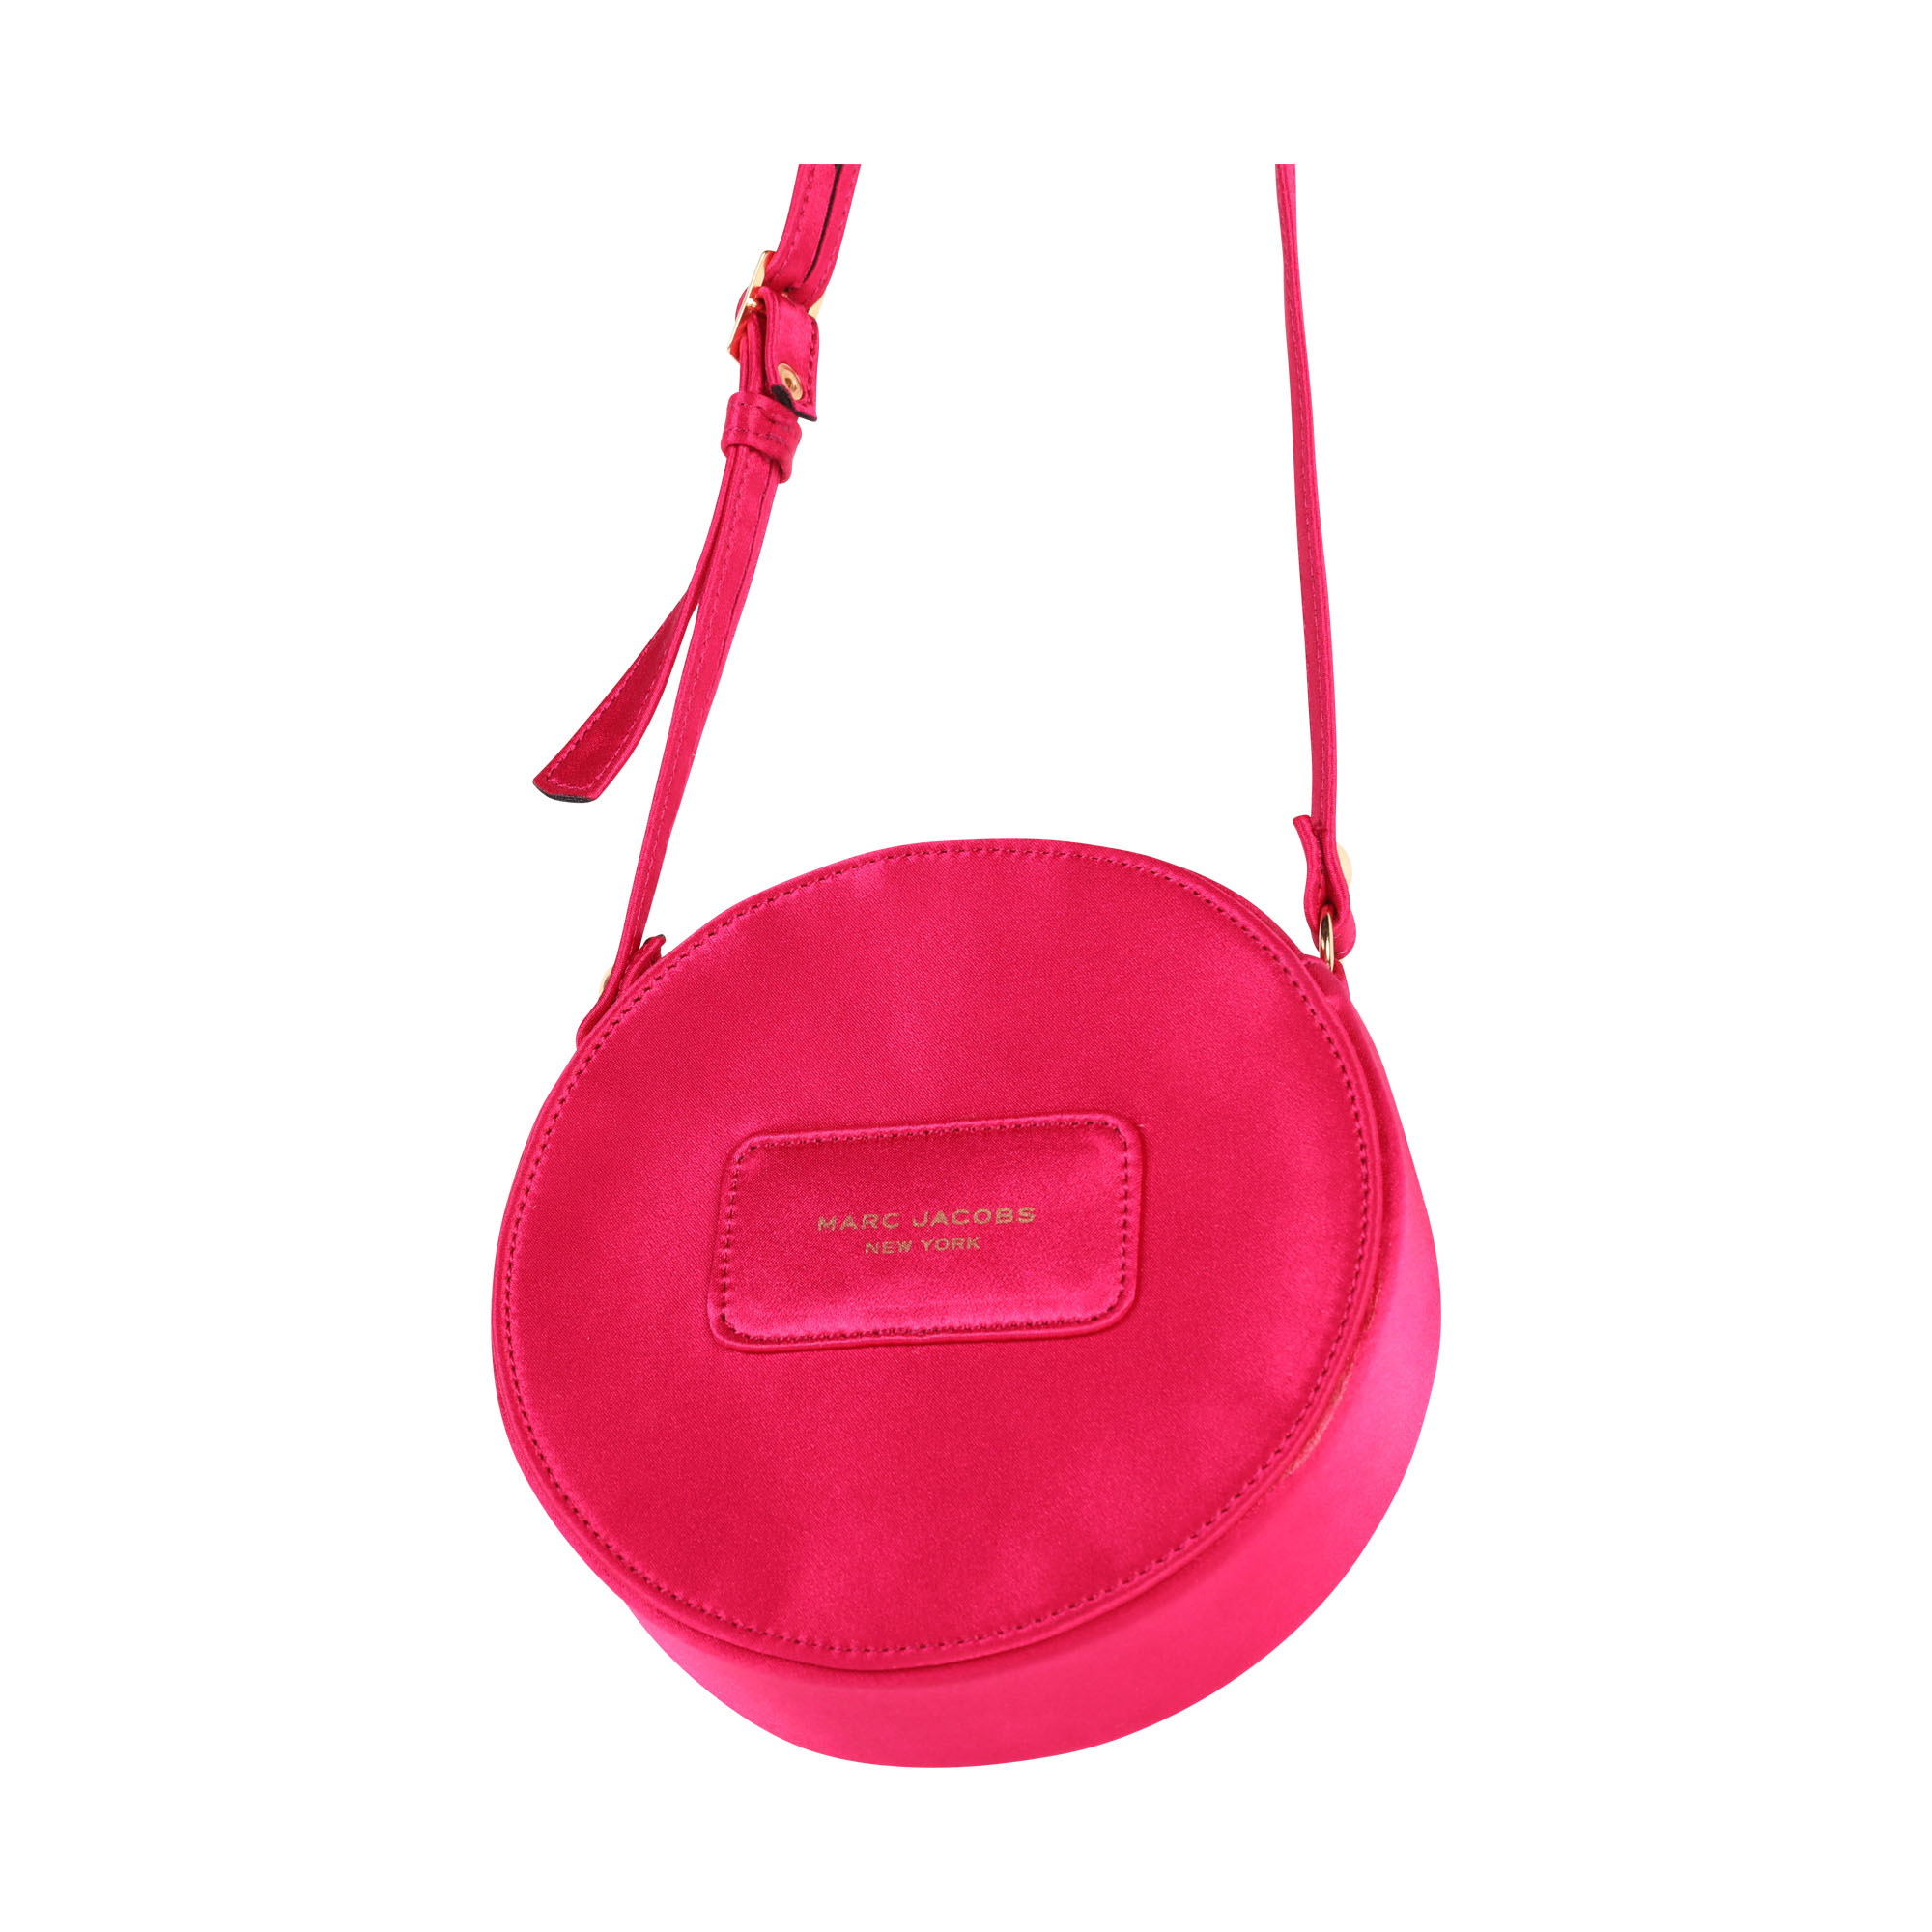 Borsa a tracolla THE MARC JACOBS Per BAMBINA